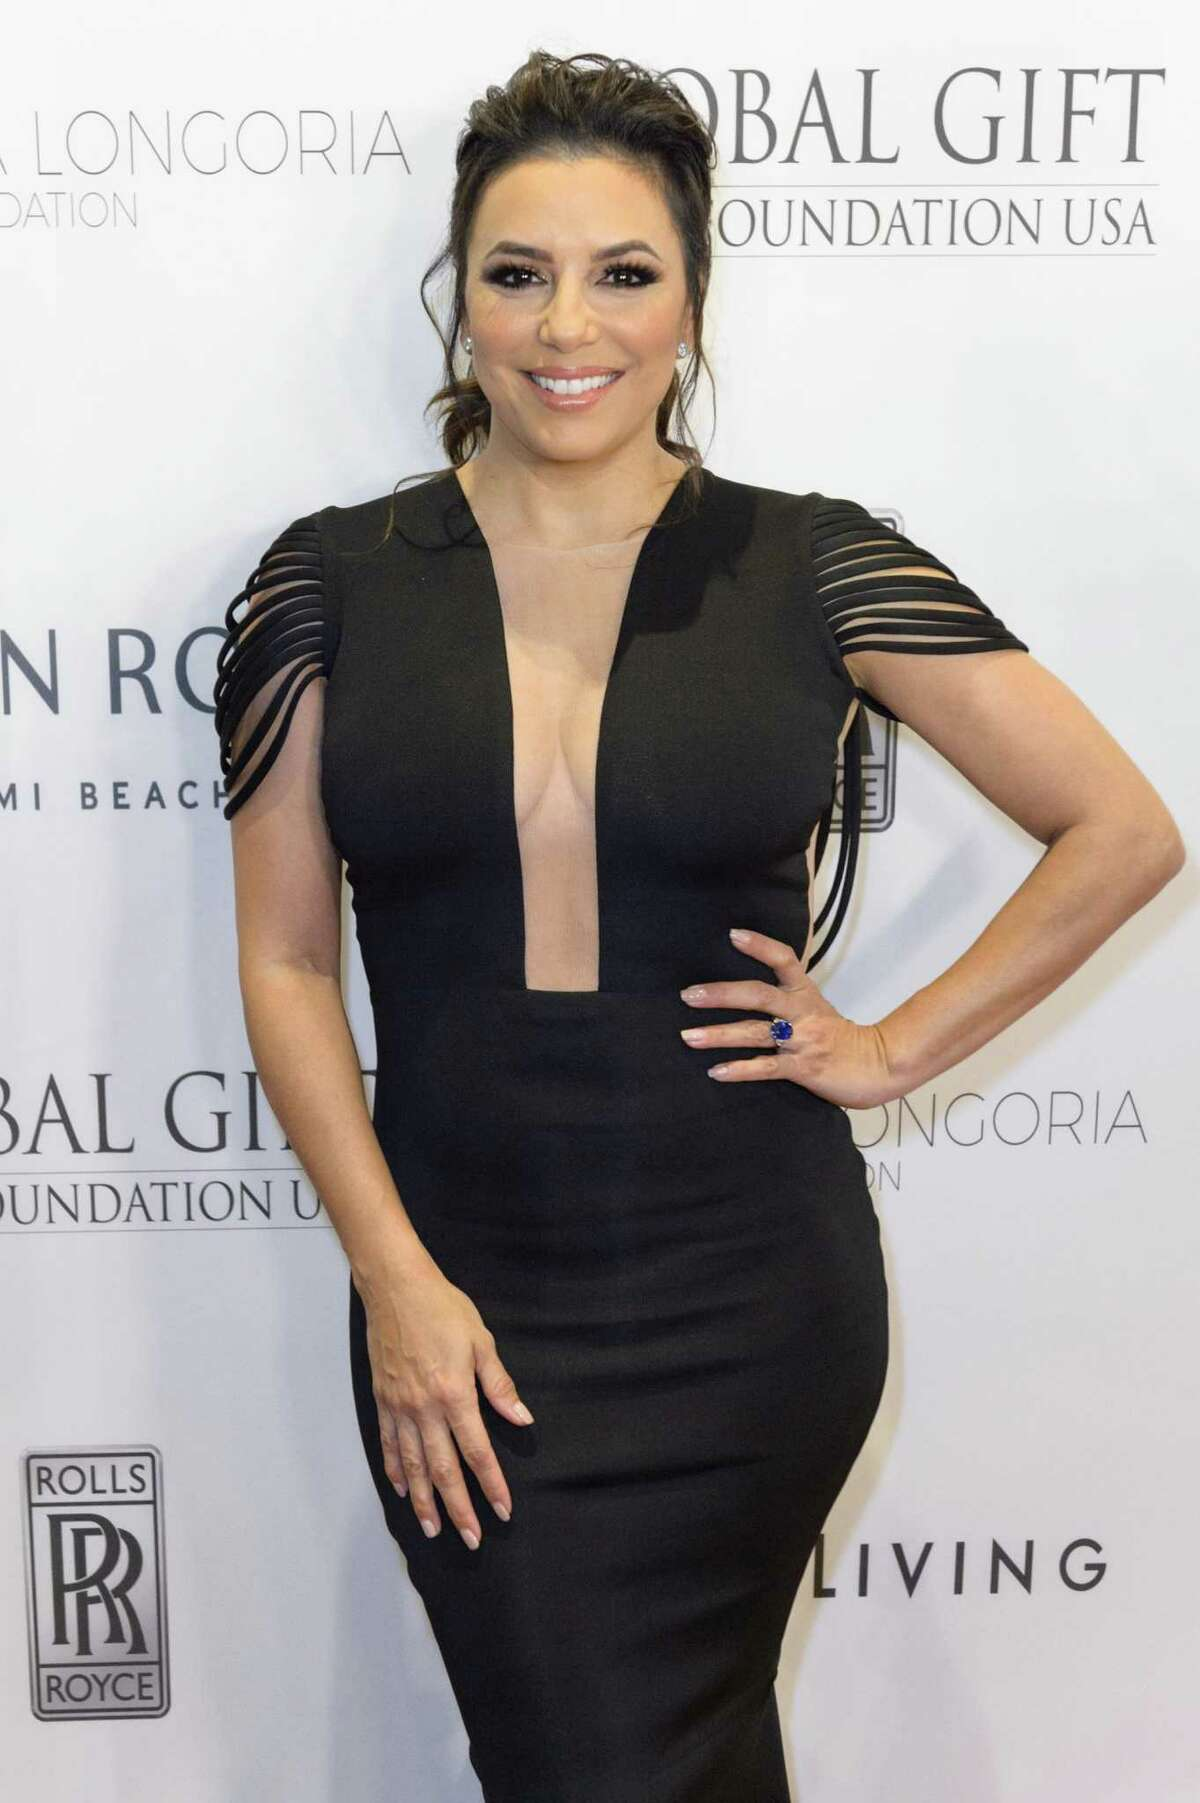 Actress Eva Longoria Baston